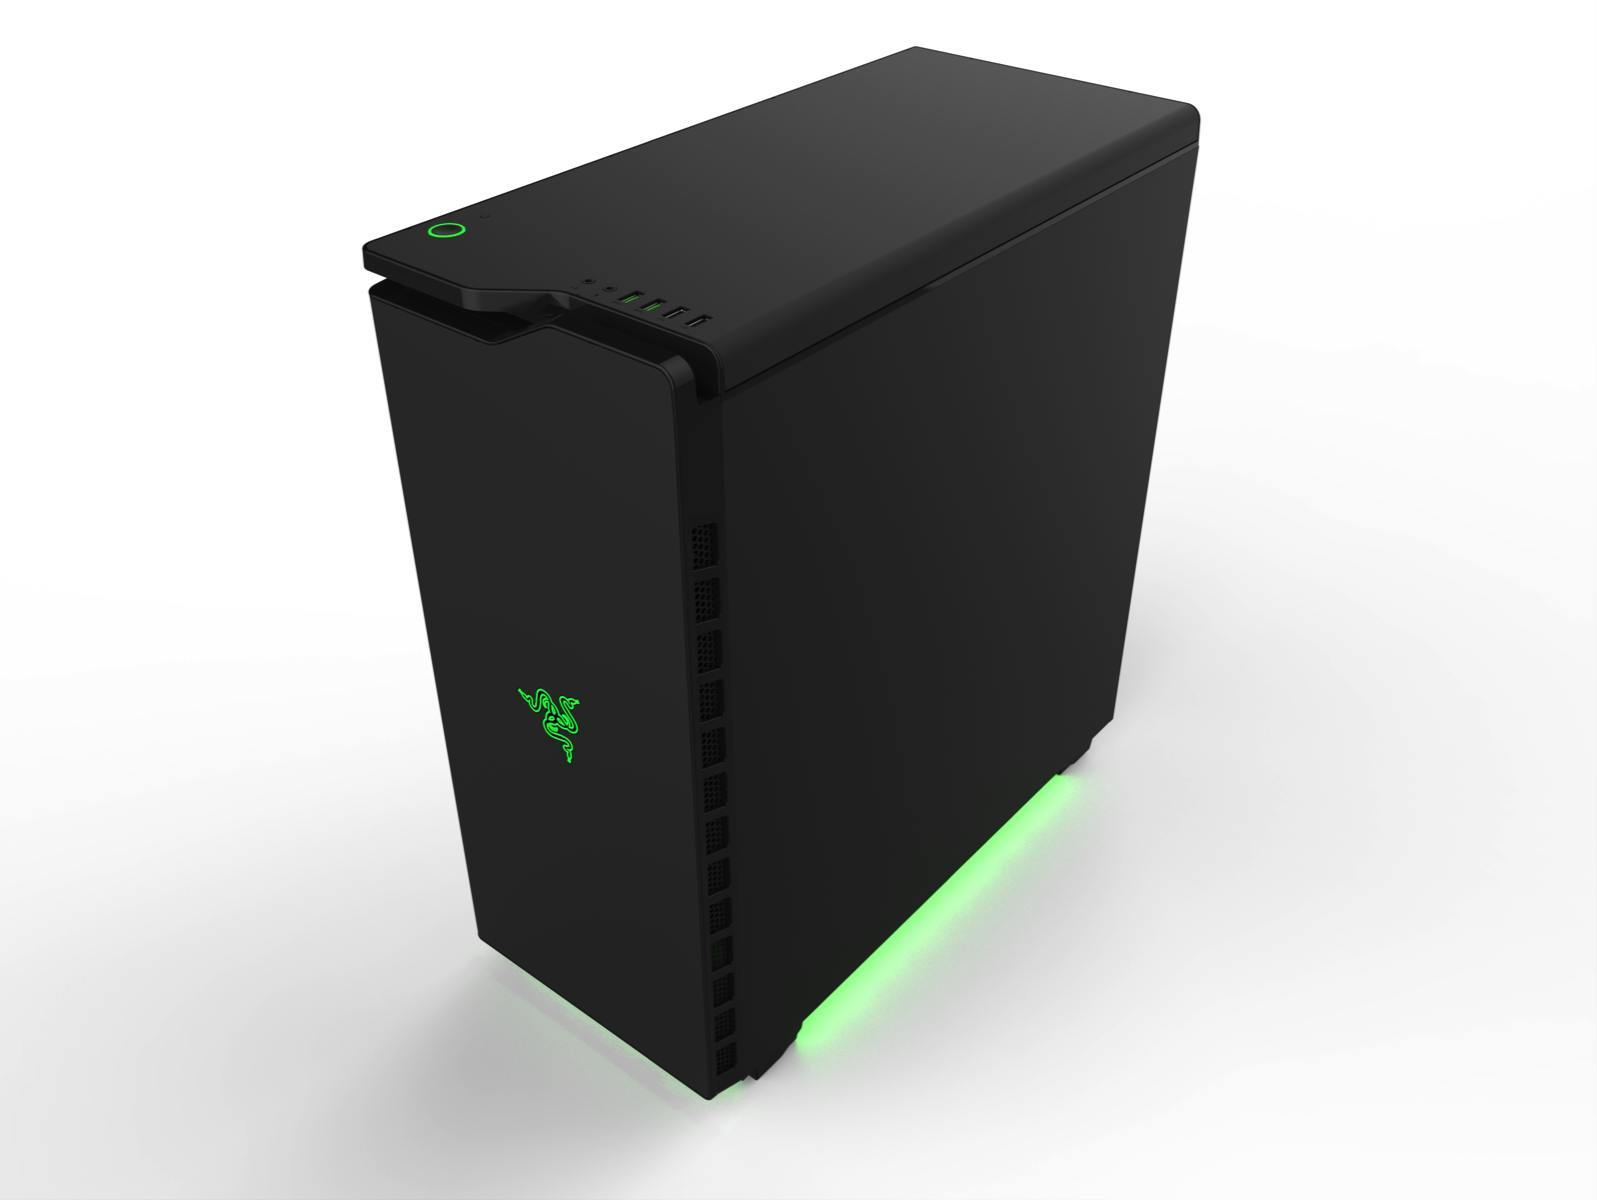 NZXT H440 Design by Razer